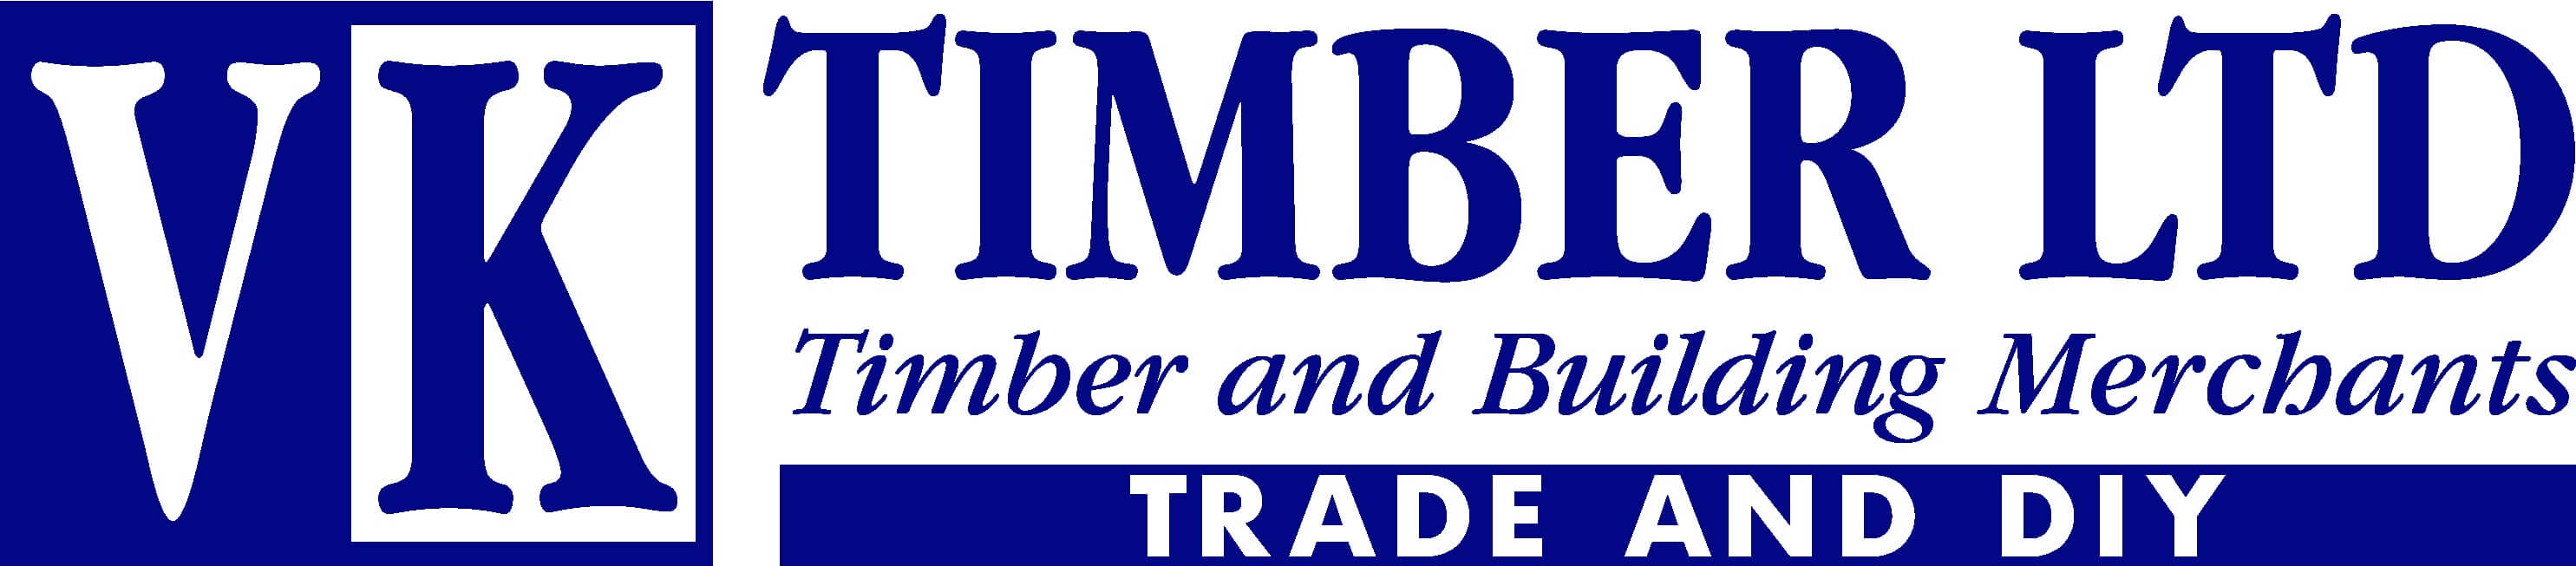 VK Timber & Building Materials Logo